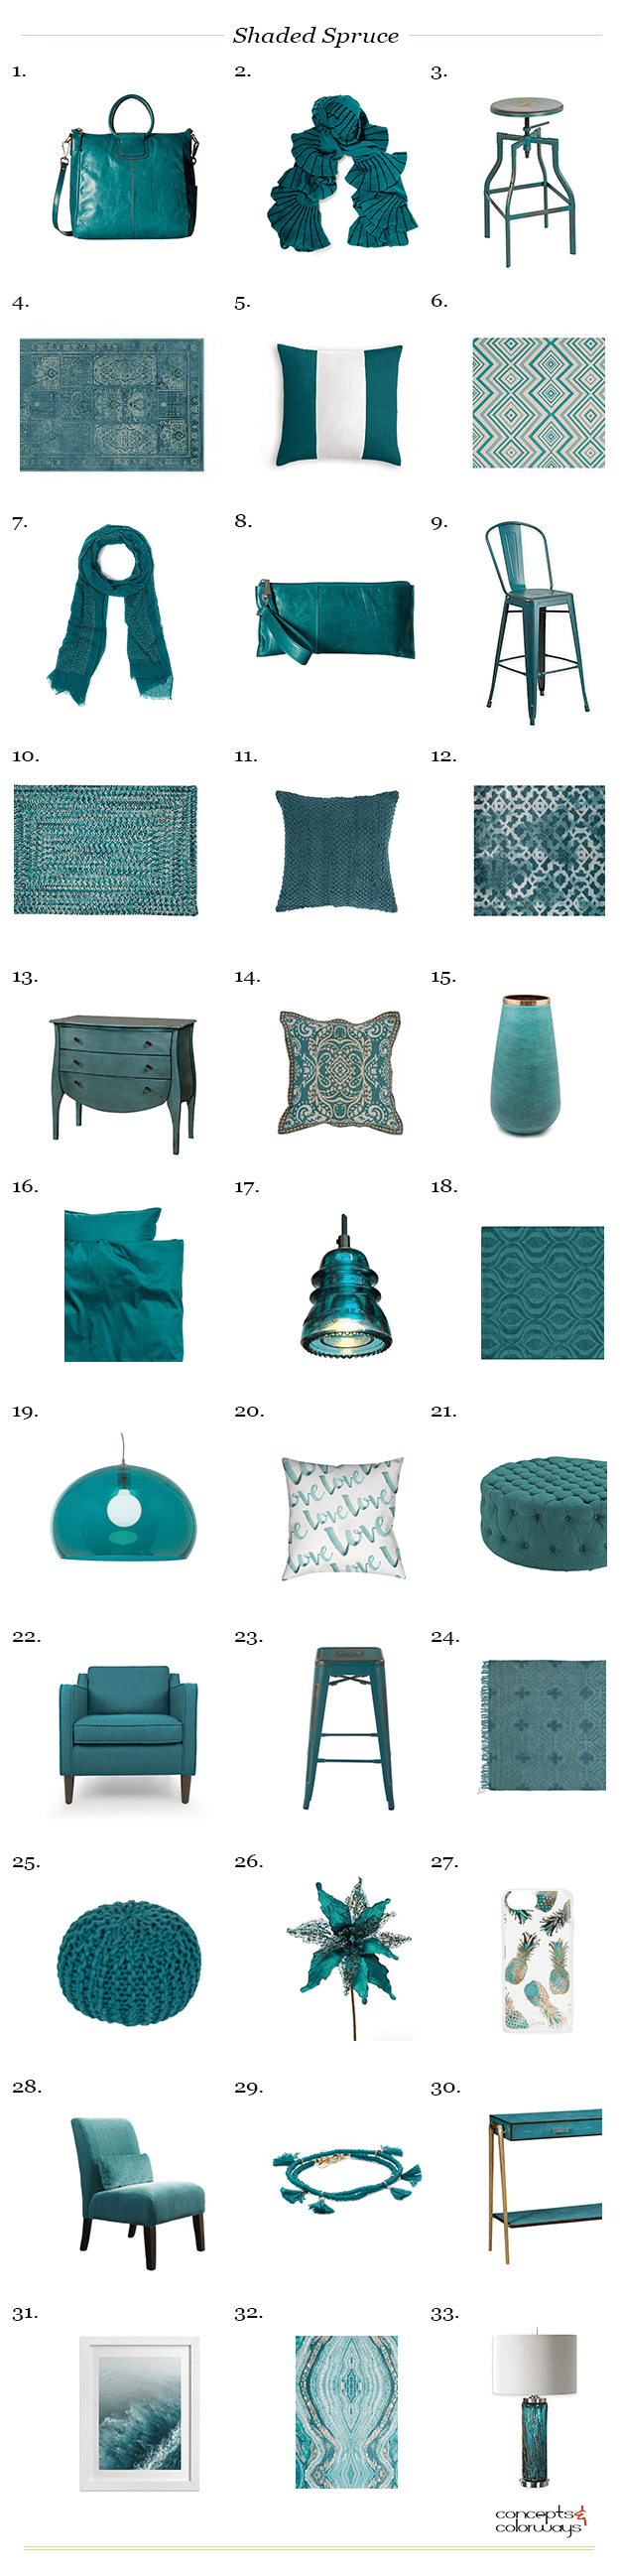 pantone shaded spruce interior design product roundup